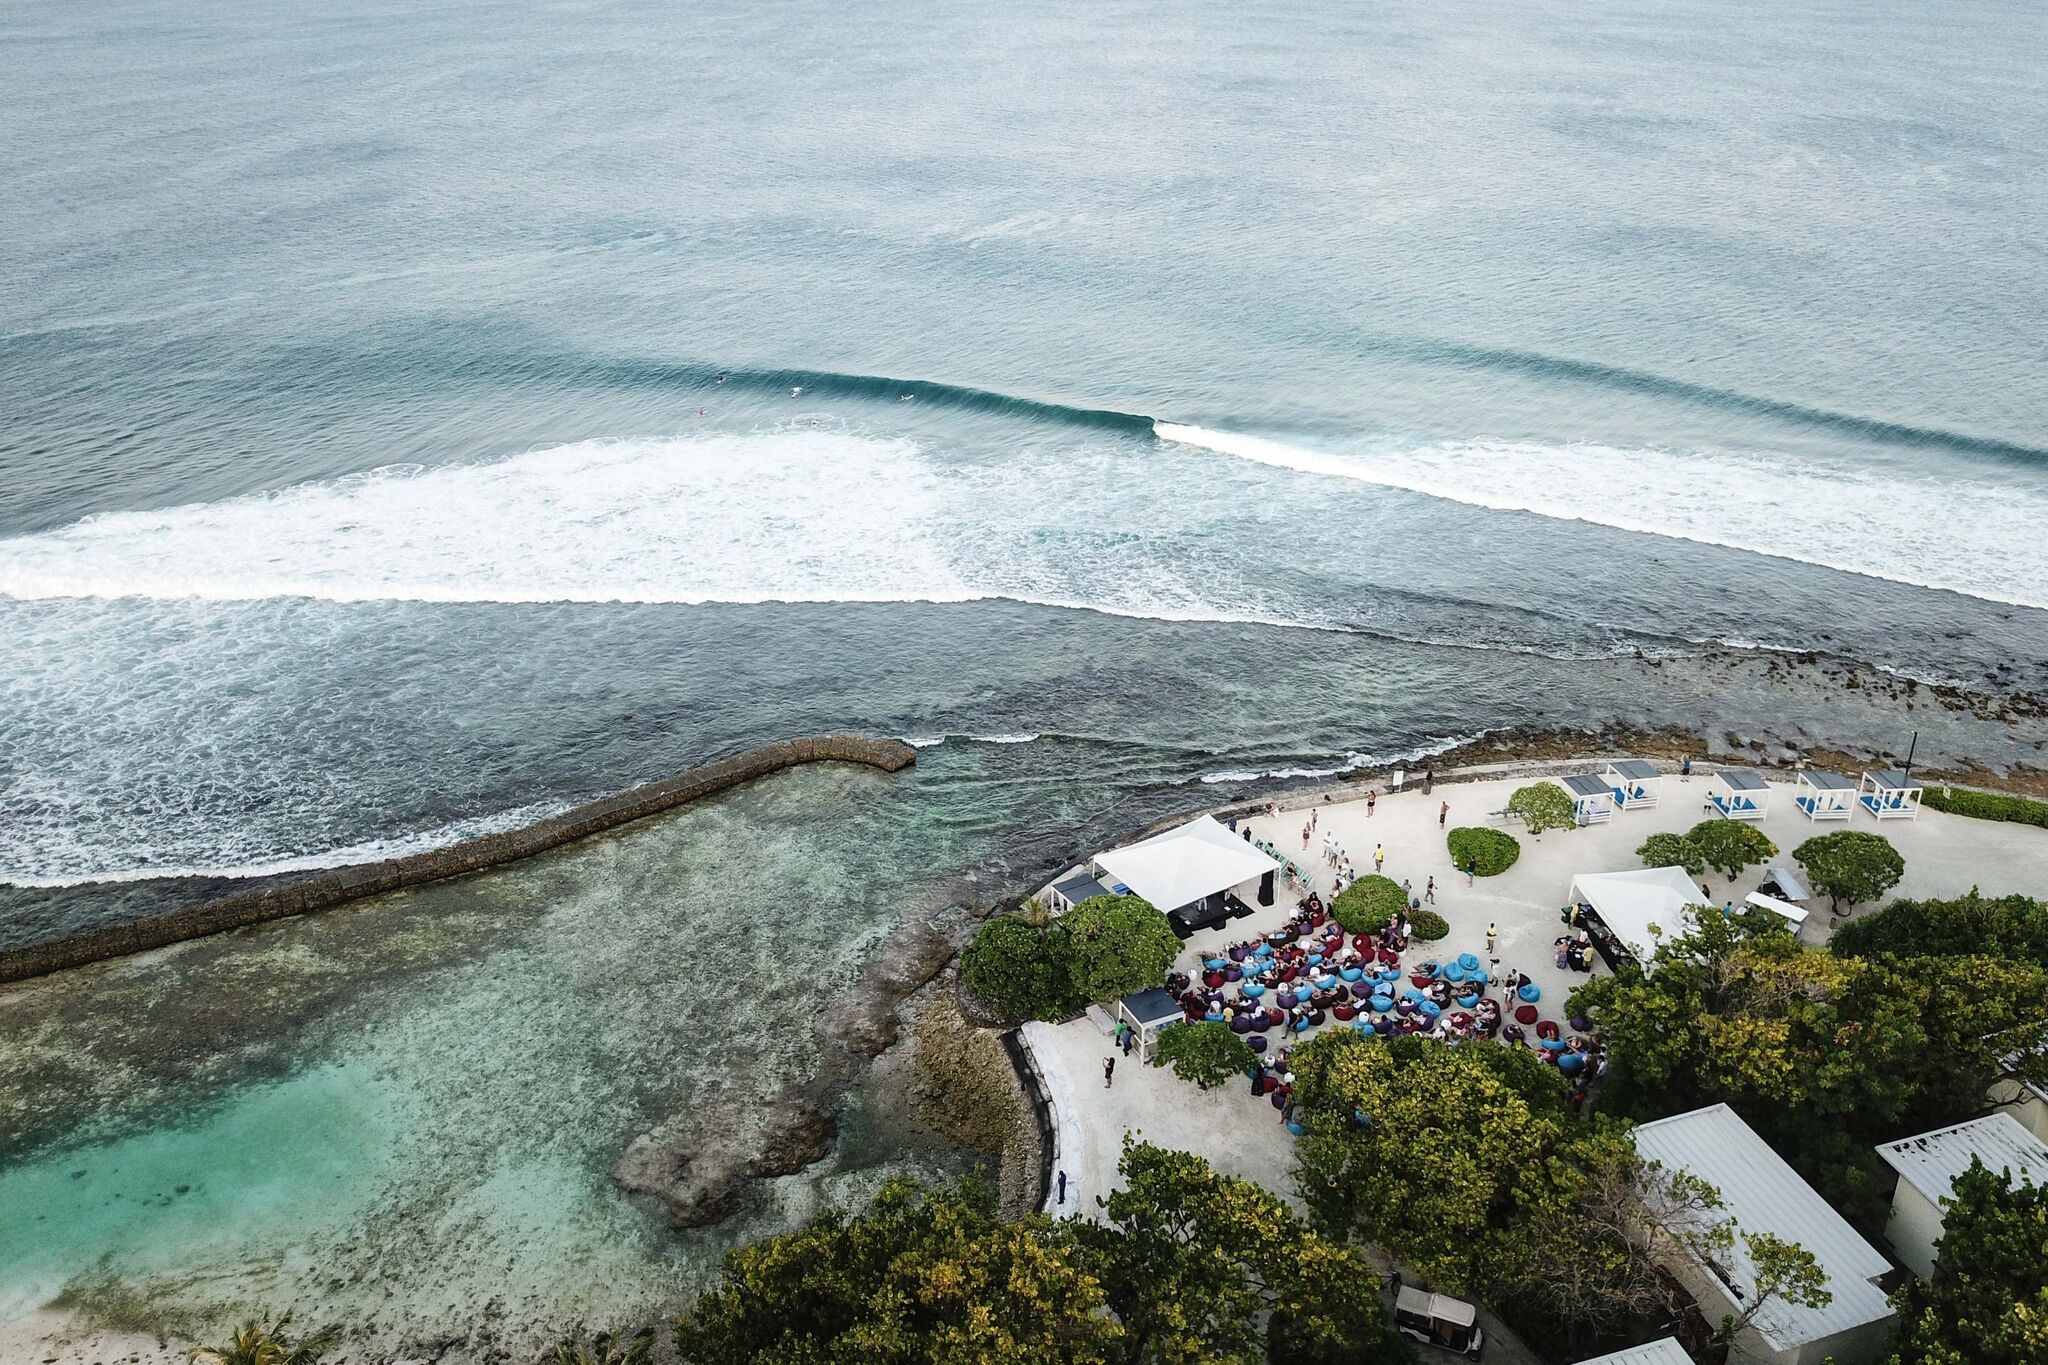 Kandooma Right again. Photo - Andy Potts C/O The Perfect Wave